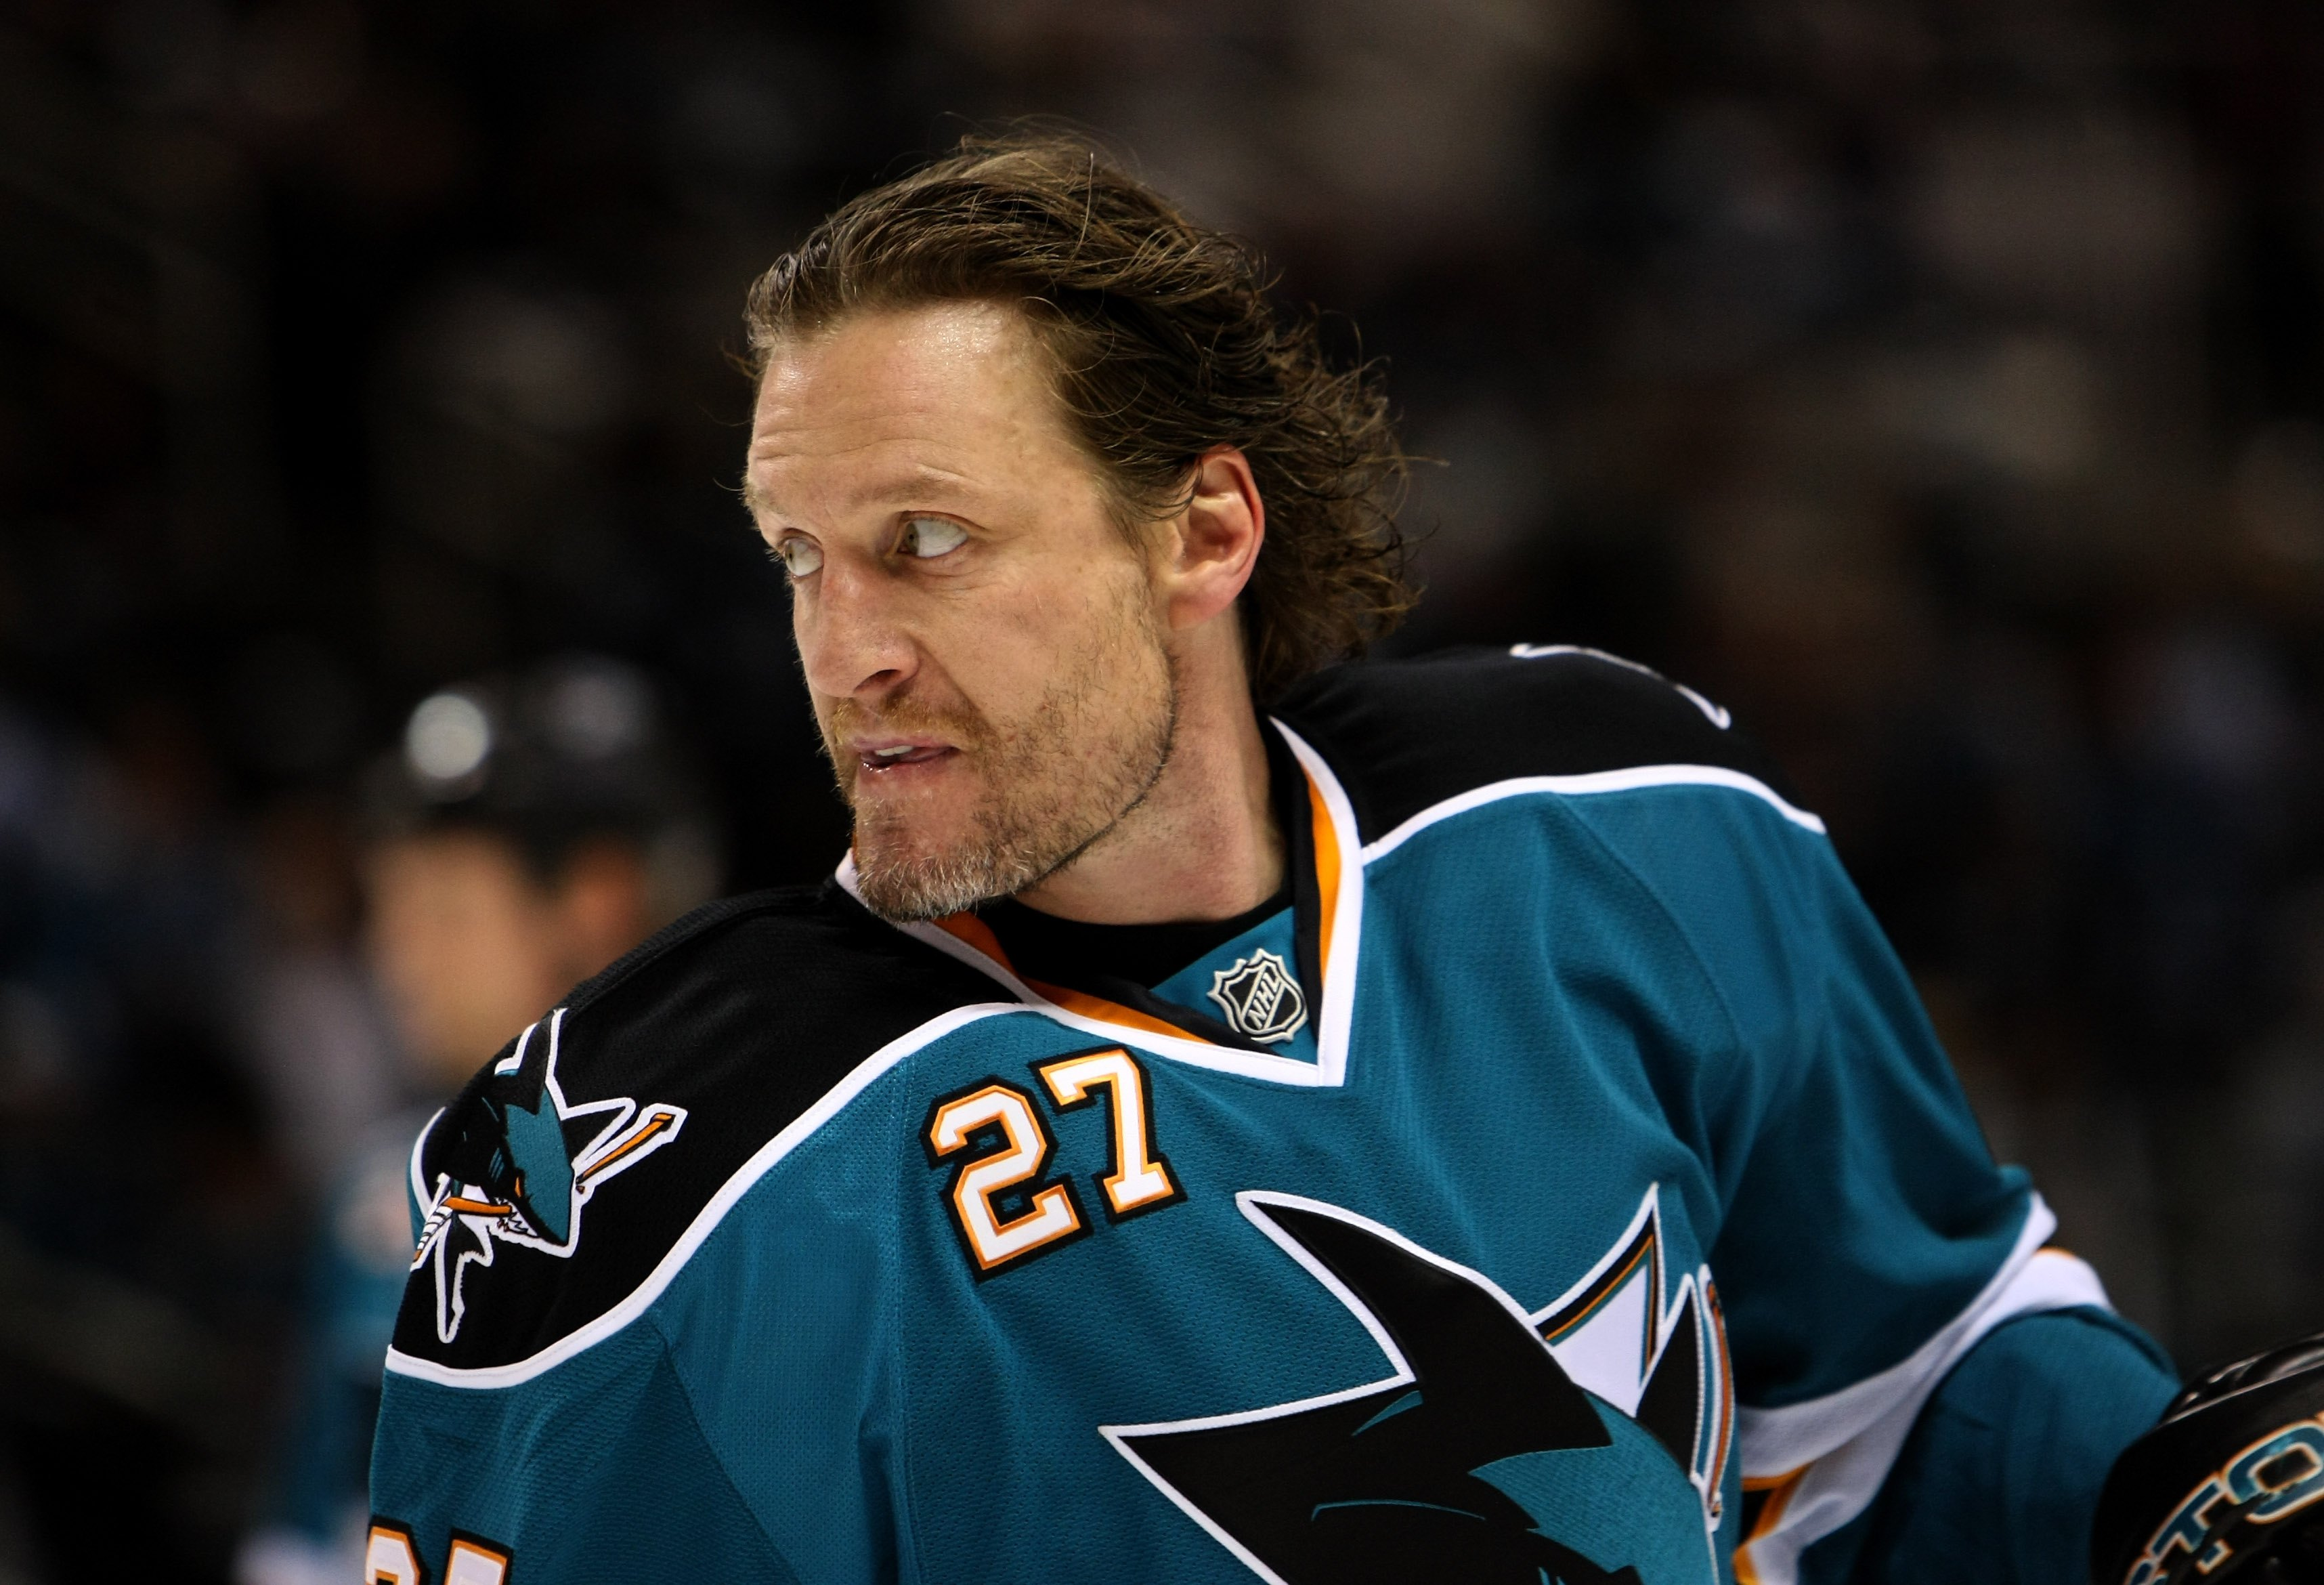 SAN JOSE, CA - APRIL 25:  Jeremy Roenick #27 of the San Jose Sharks warms up prior to playing the Anaheim Ducks during Game Five of the Western Conference Quarterfinal Round of the 2009 NHL Stanley Cup Playoffs at HP Pavilion on April 25, 2009 in San Jose